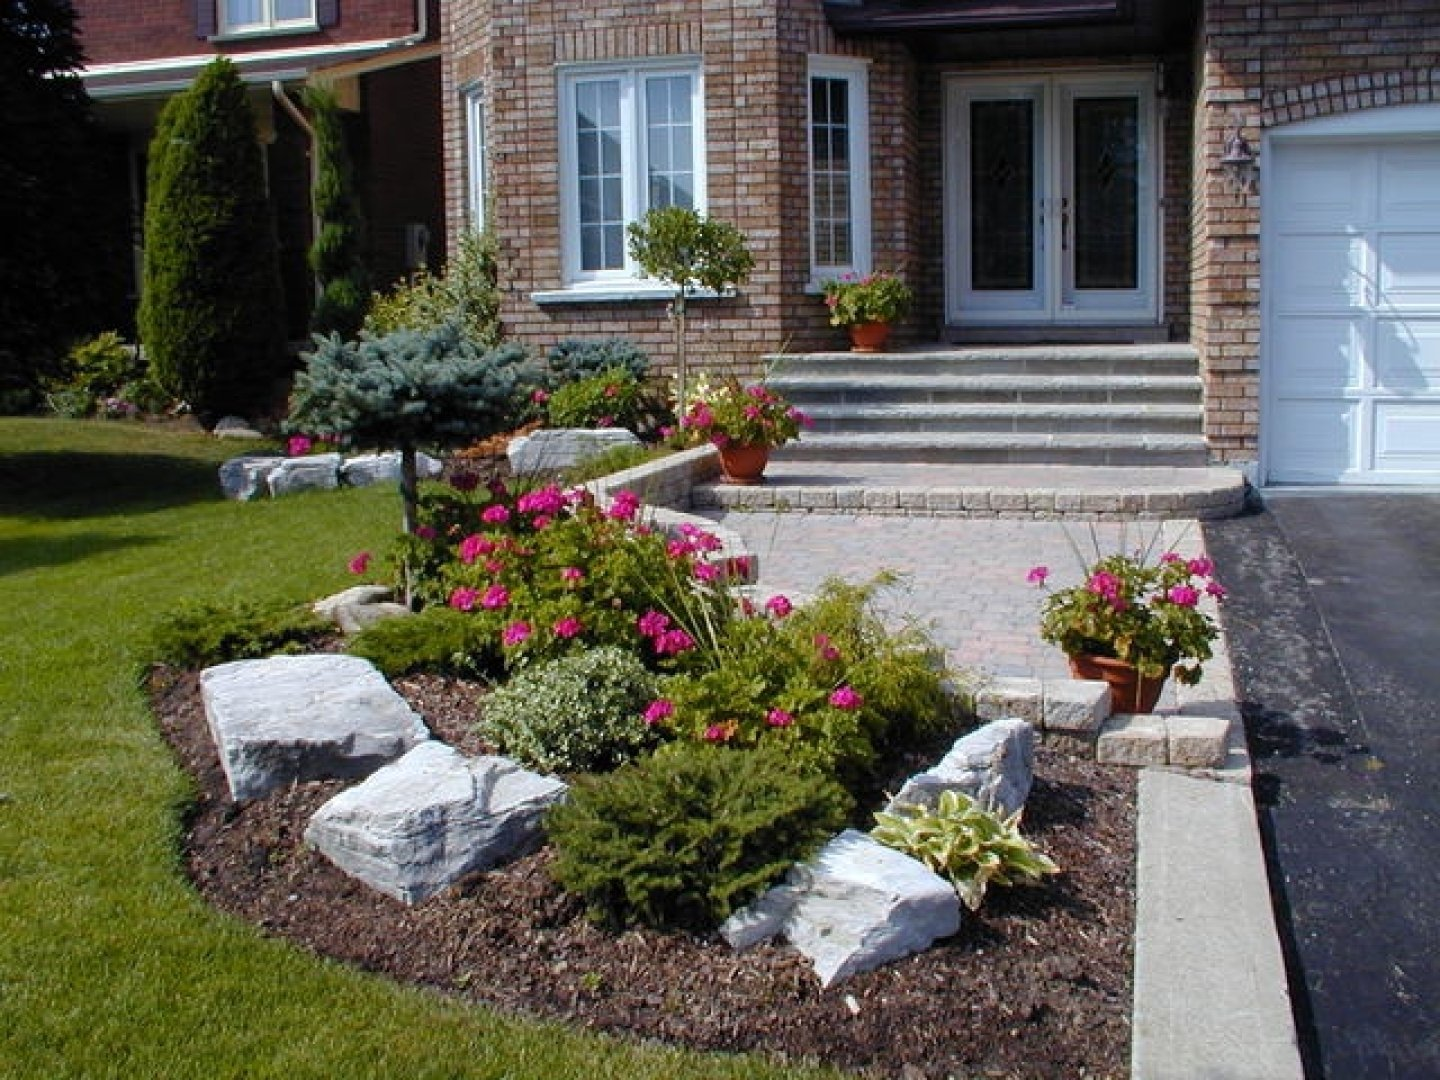 10 Stunning Small Front Yard Landscaping Ideas front yard 40 wonderful small front garden landscaping ideas images 1